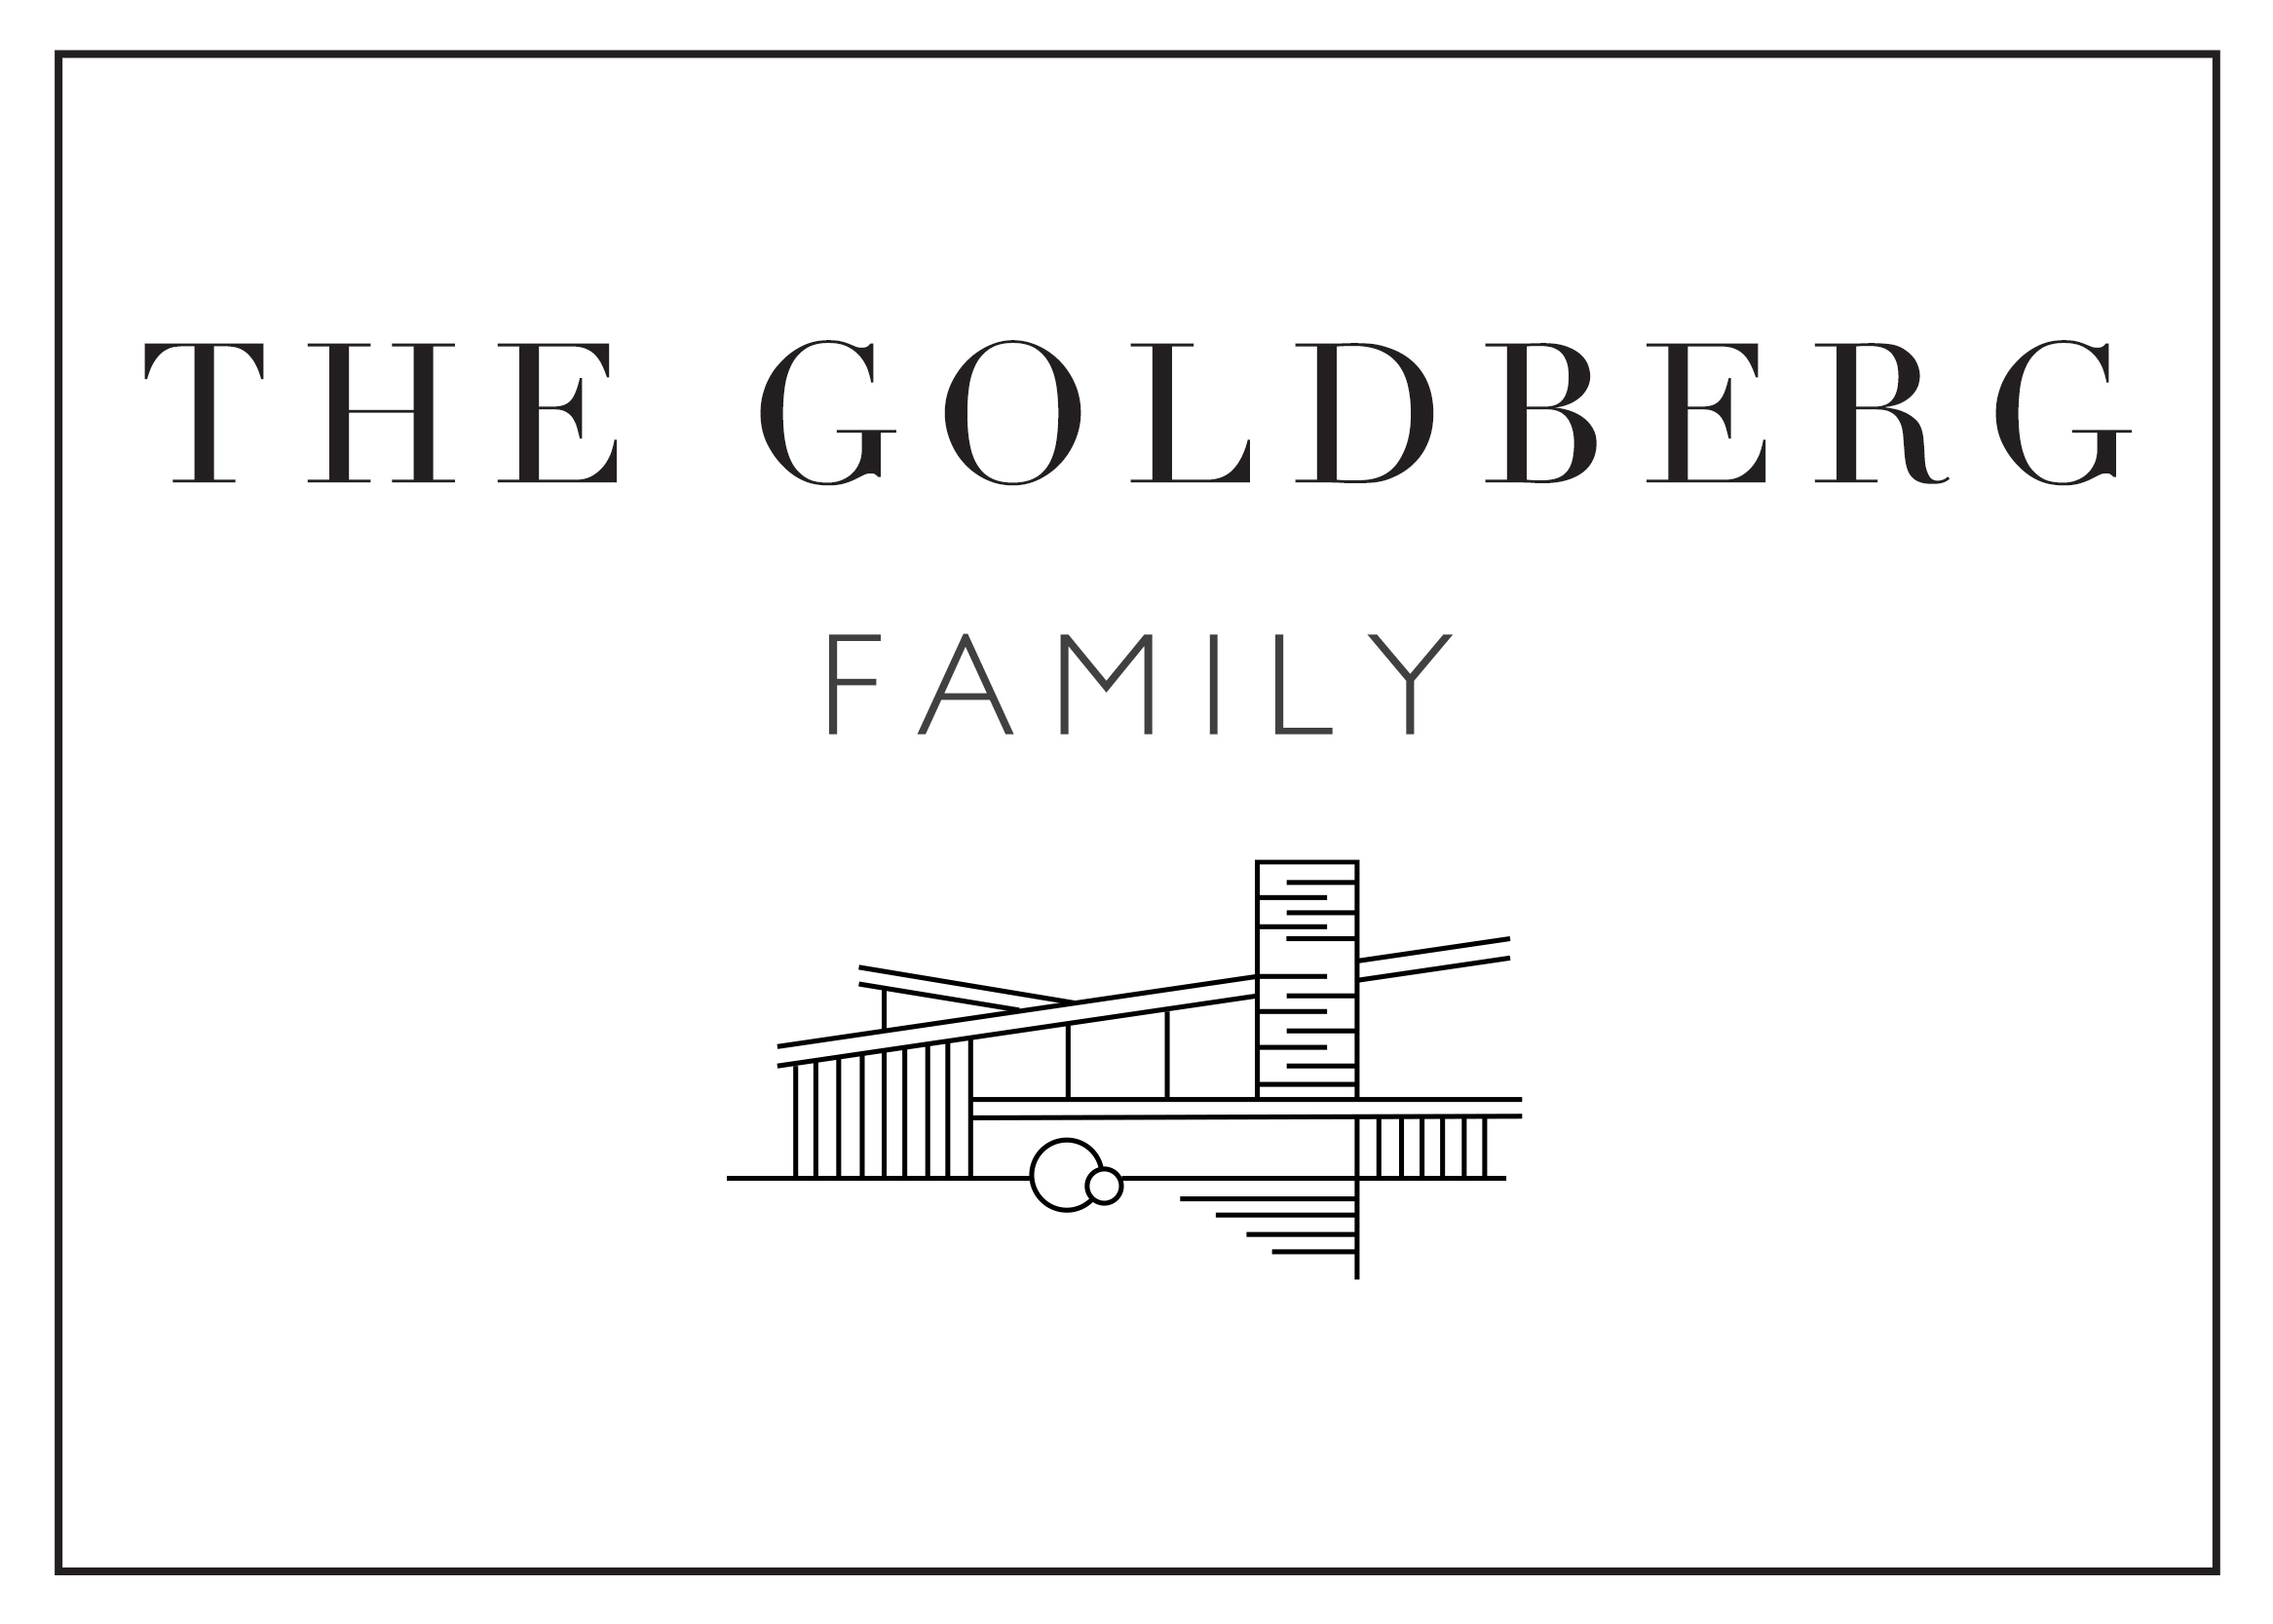 Goldberg Family.jpg